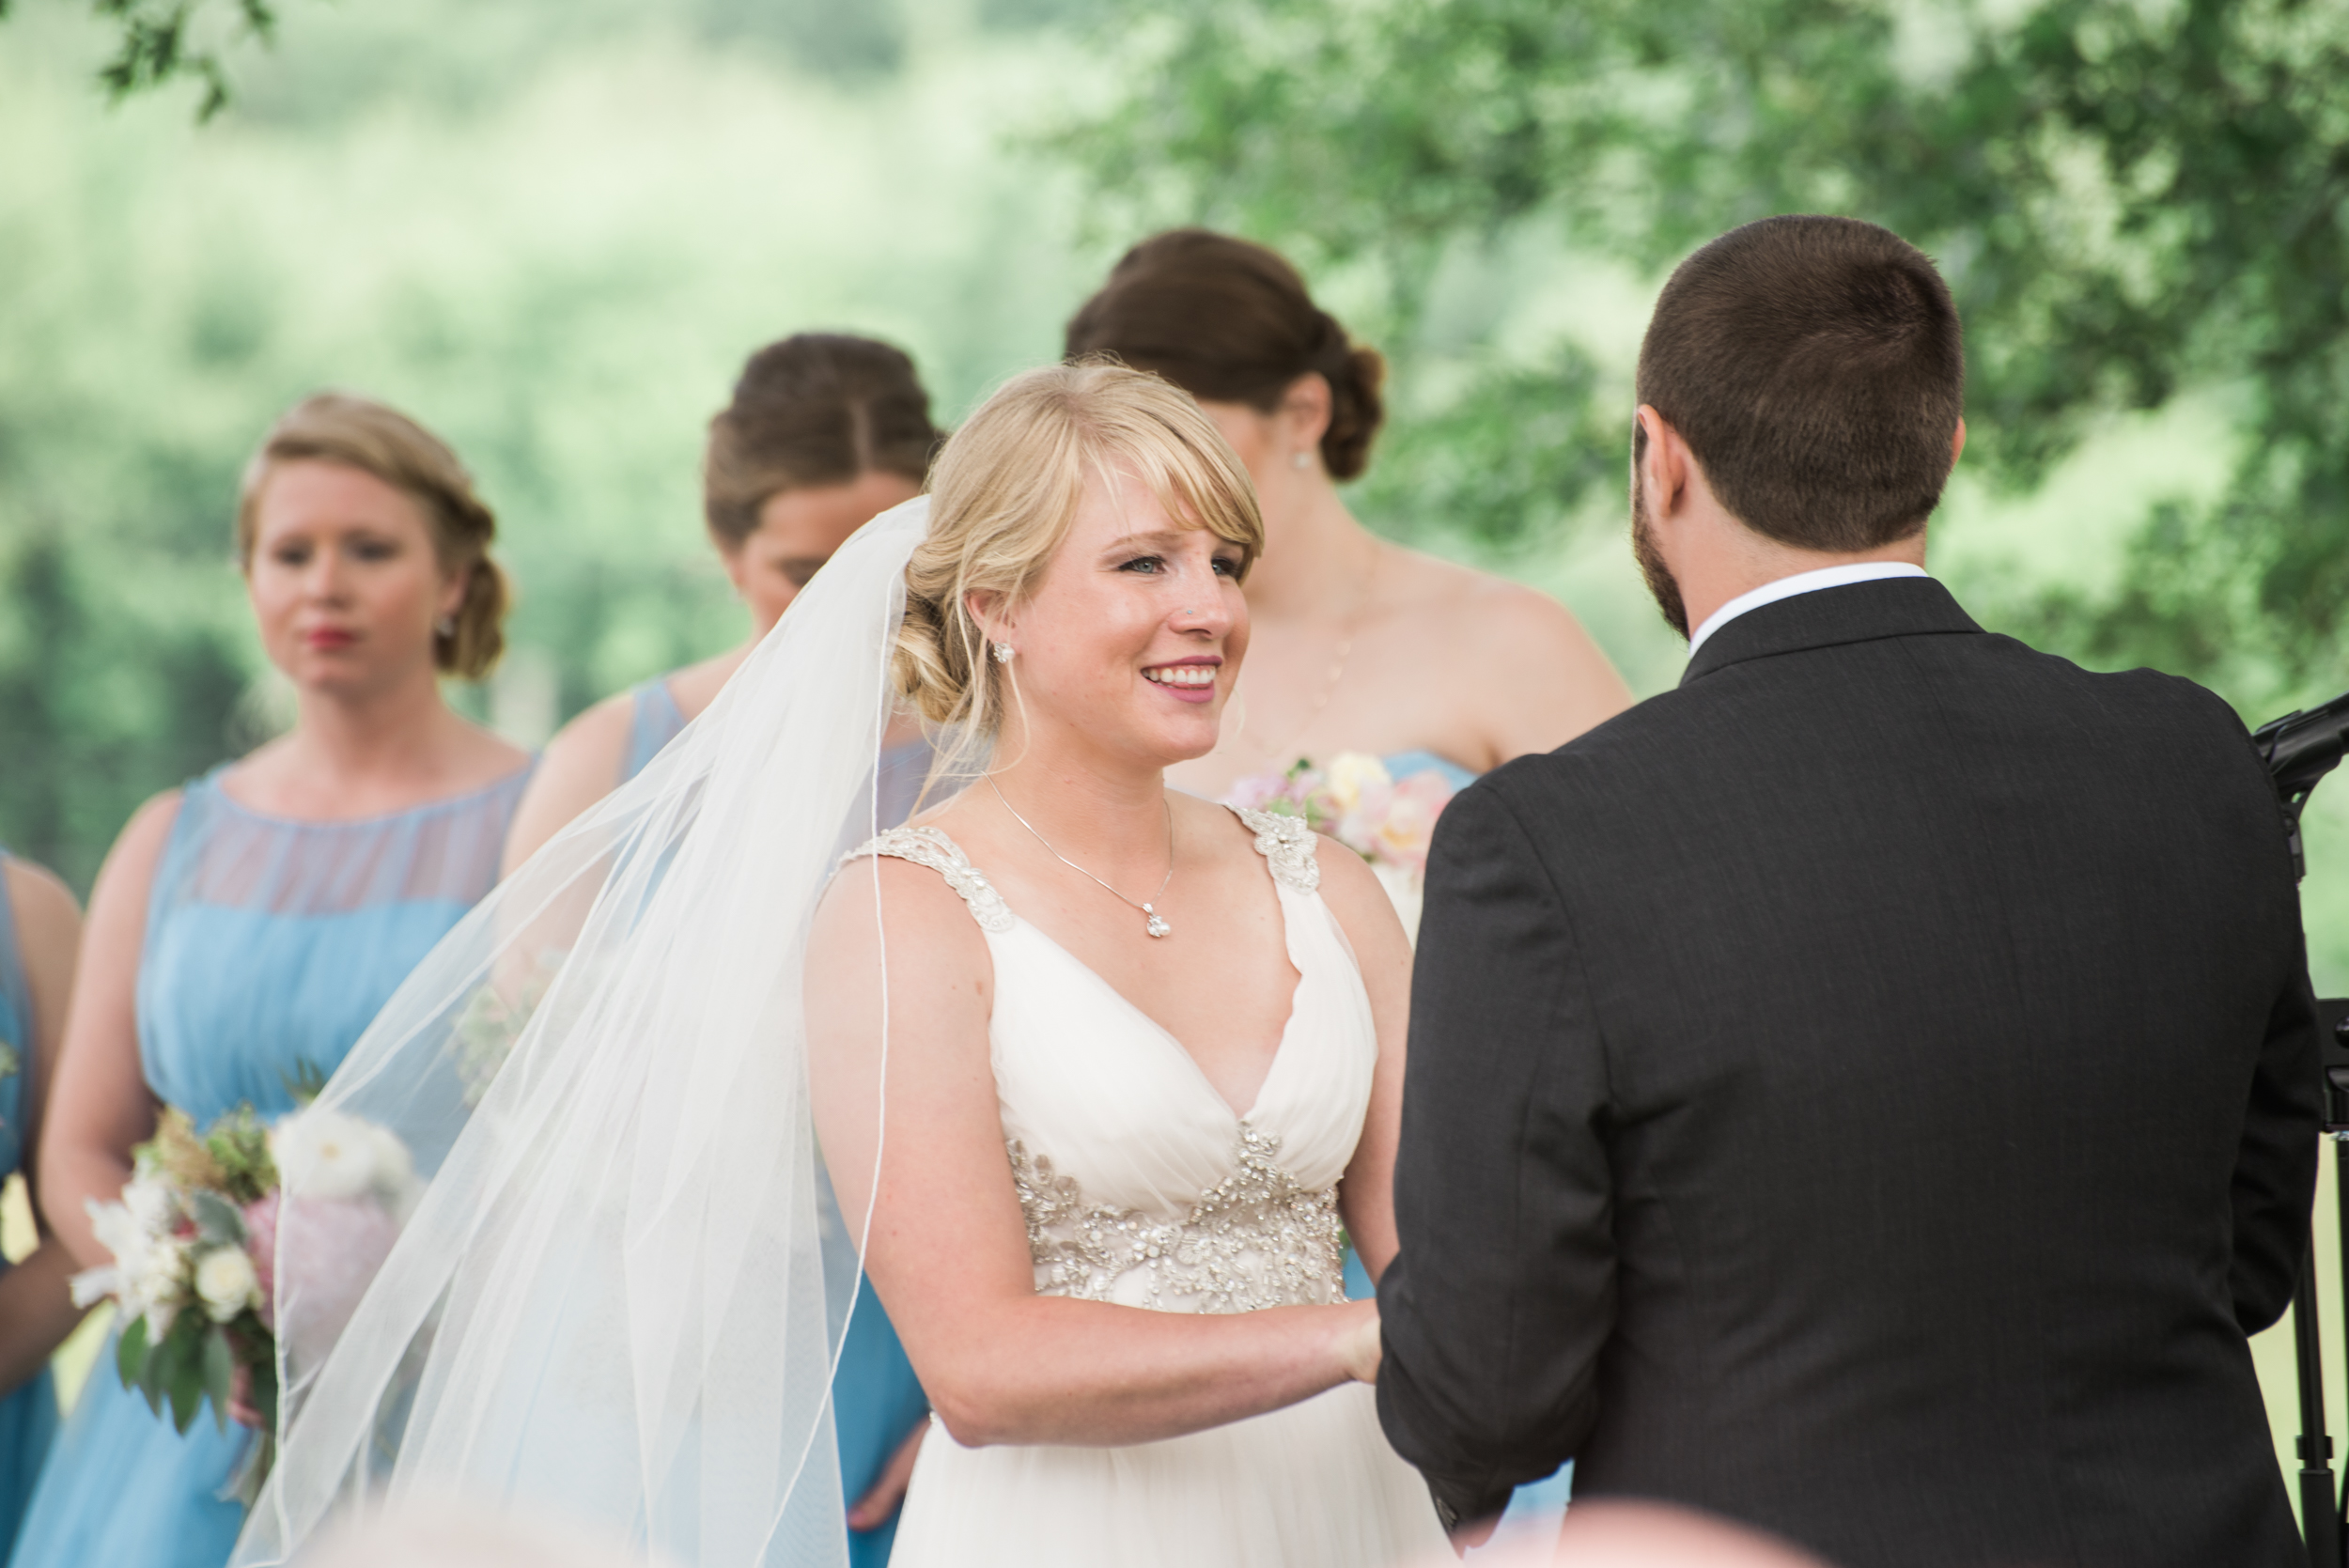 Wedding Photographers in Amherst MA